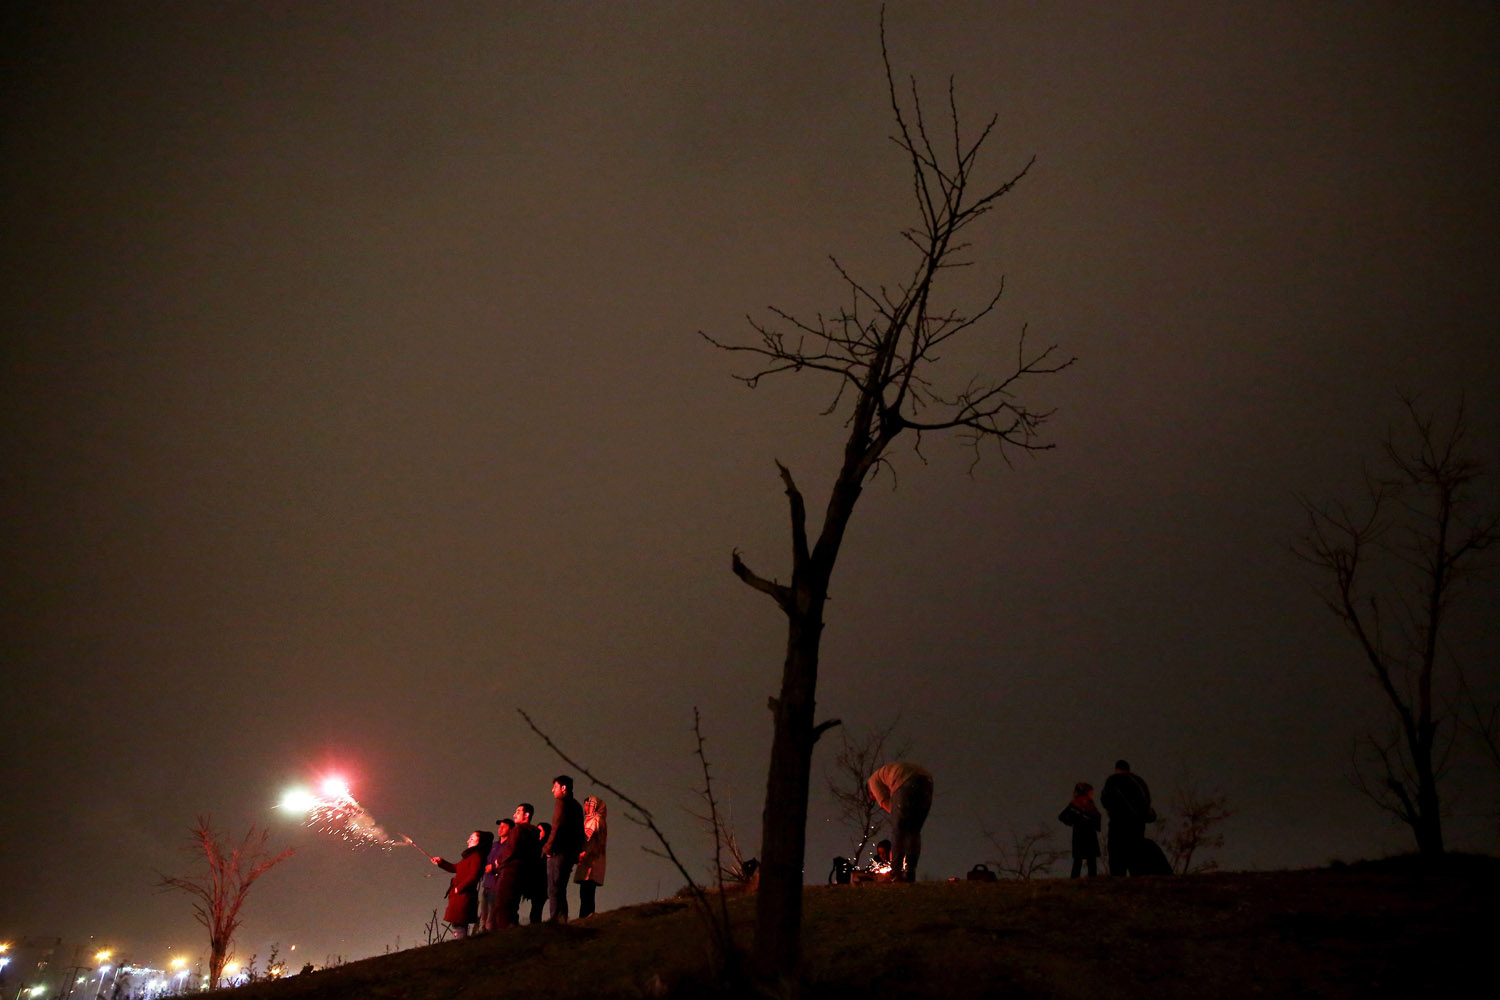 Mar. 18, 2014. An Iranian woman lights fireworks during a celebration, known as Chaharshanbe Souri, or Wednesday Feast,  marking the eve of the last Wednesday of the solar Persian year, in Pardisan park, Tehran, Iran.